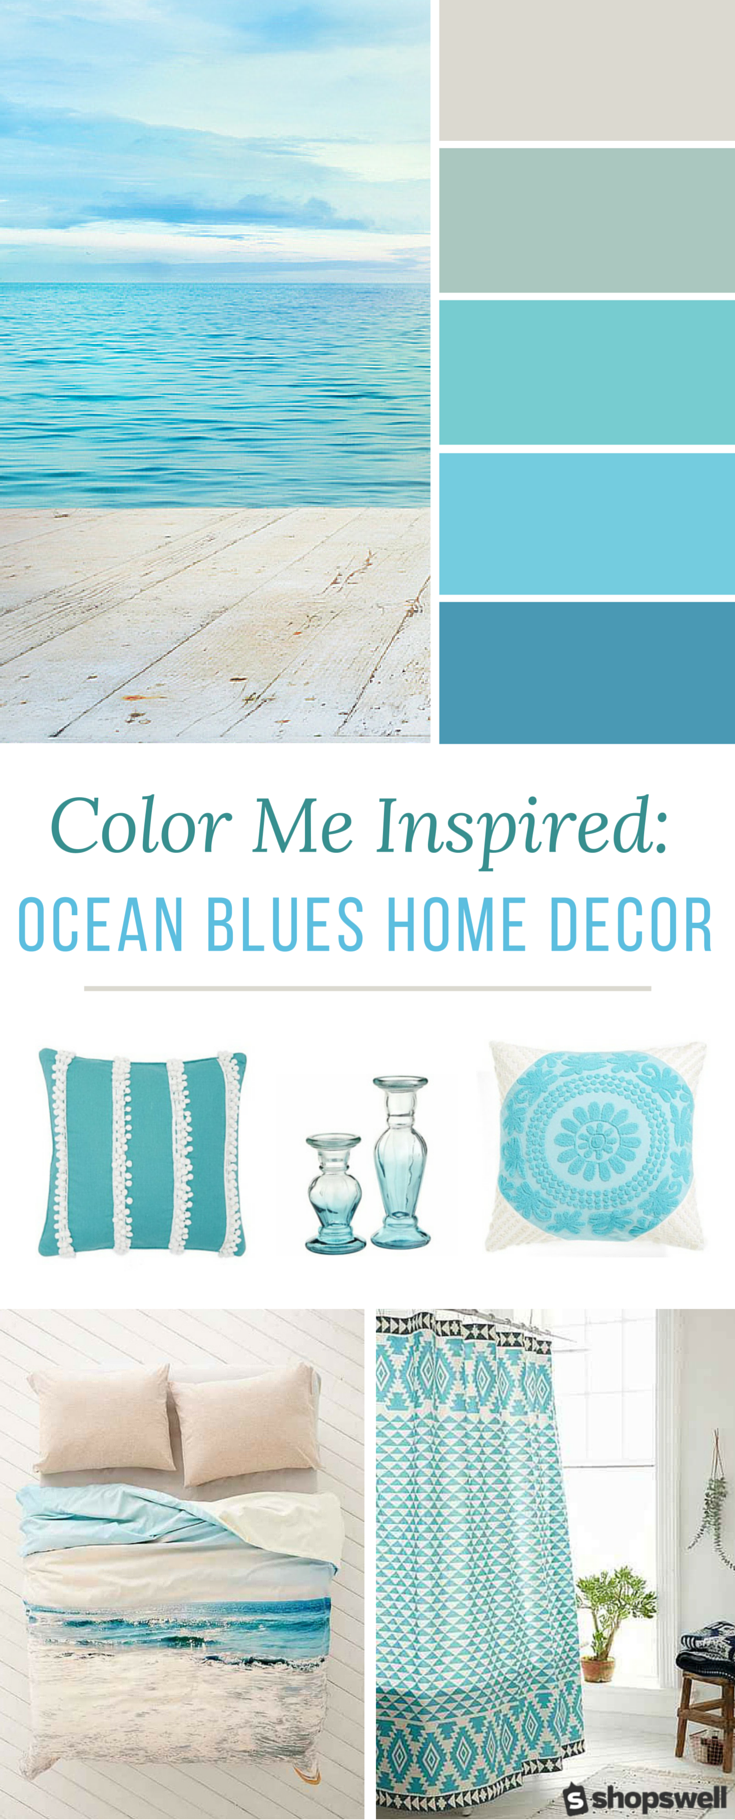 Wh what are good colors for bedrooms - Color Me Inspired Ocean Blues Home Decor Inspiration